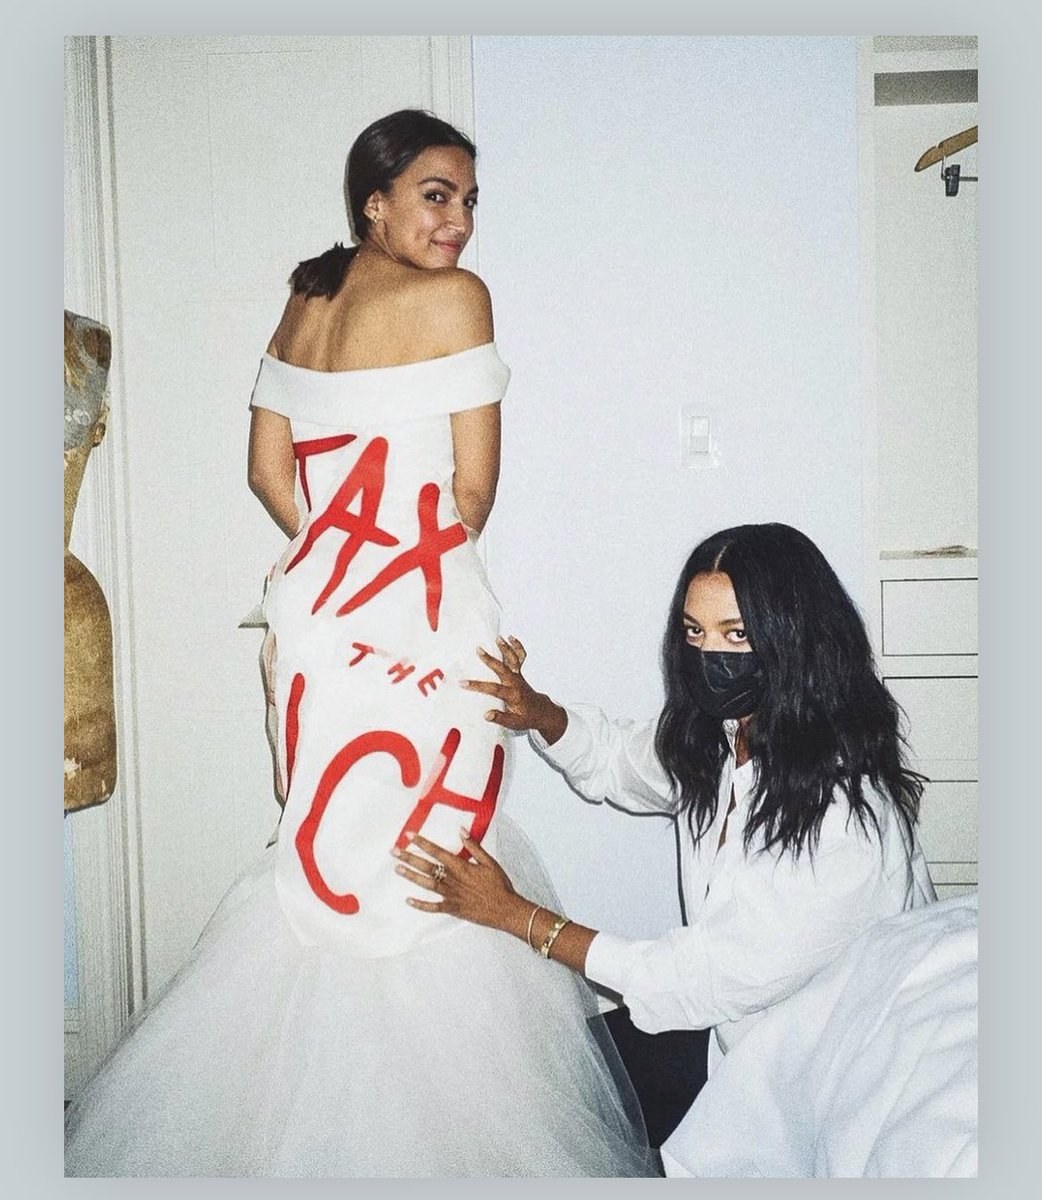 This is icon behavior! @AOC wearing #TaxTheRich to #MetGala is so ❤️🔥❤️🔥❤️🔥